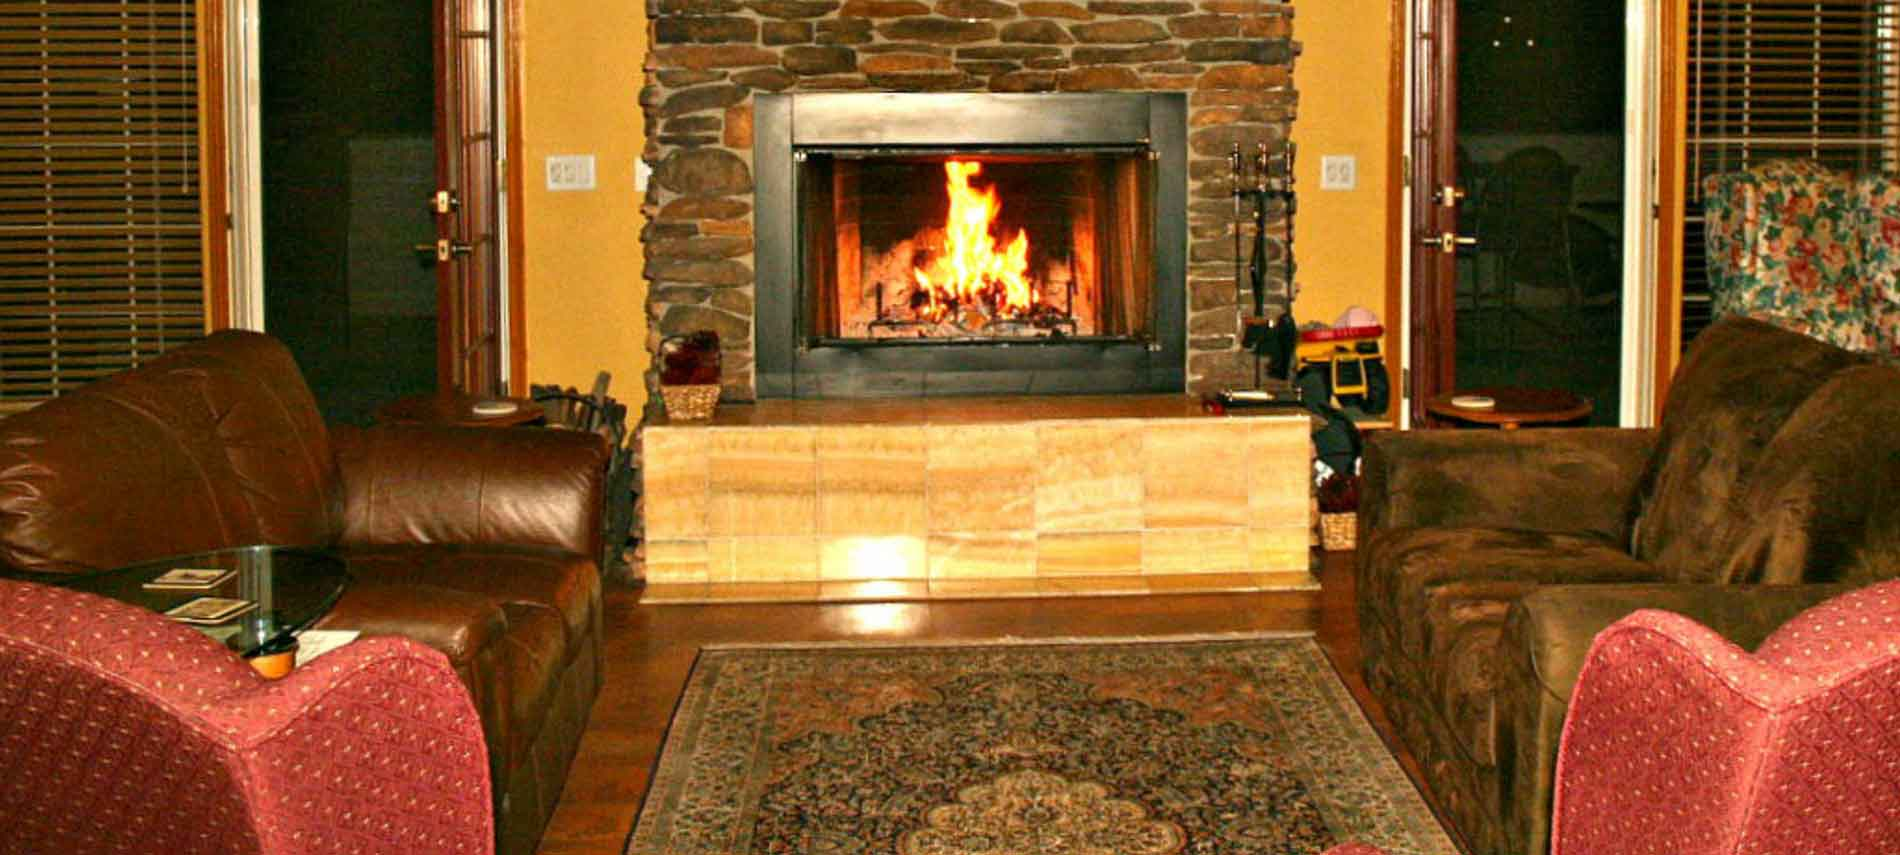 A fire place sitting in a living room filled with furniture and a fireplace at Lucinda's Country Inn.